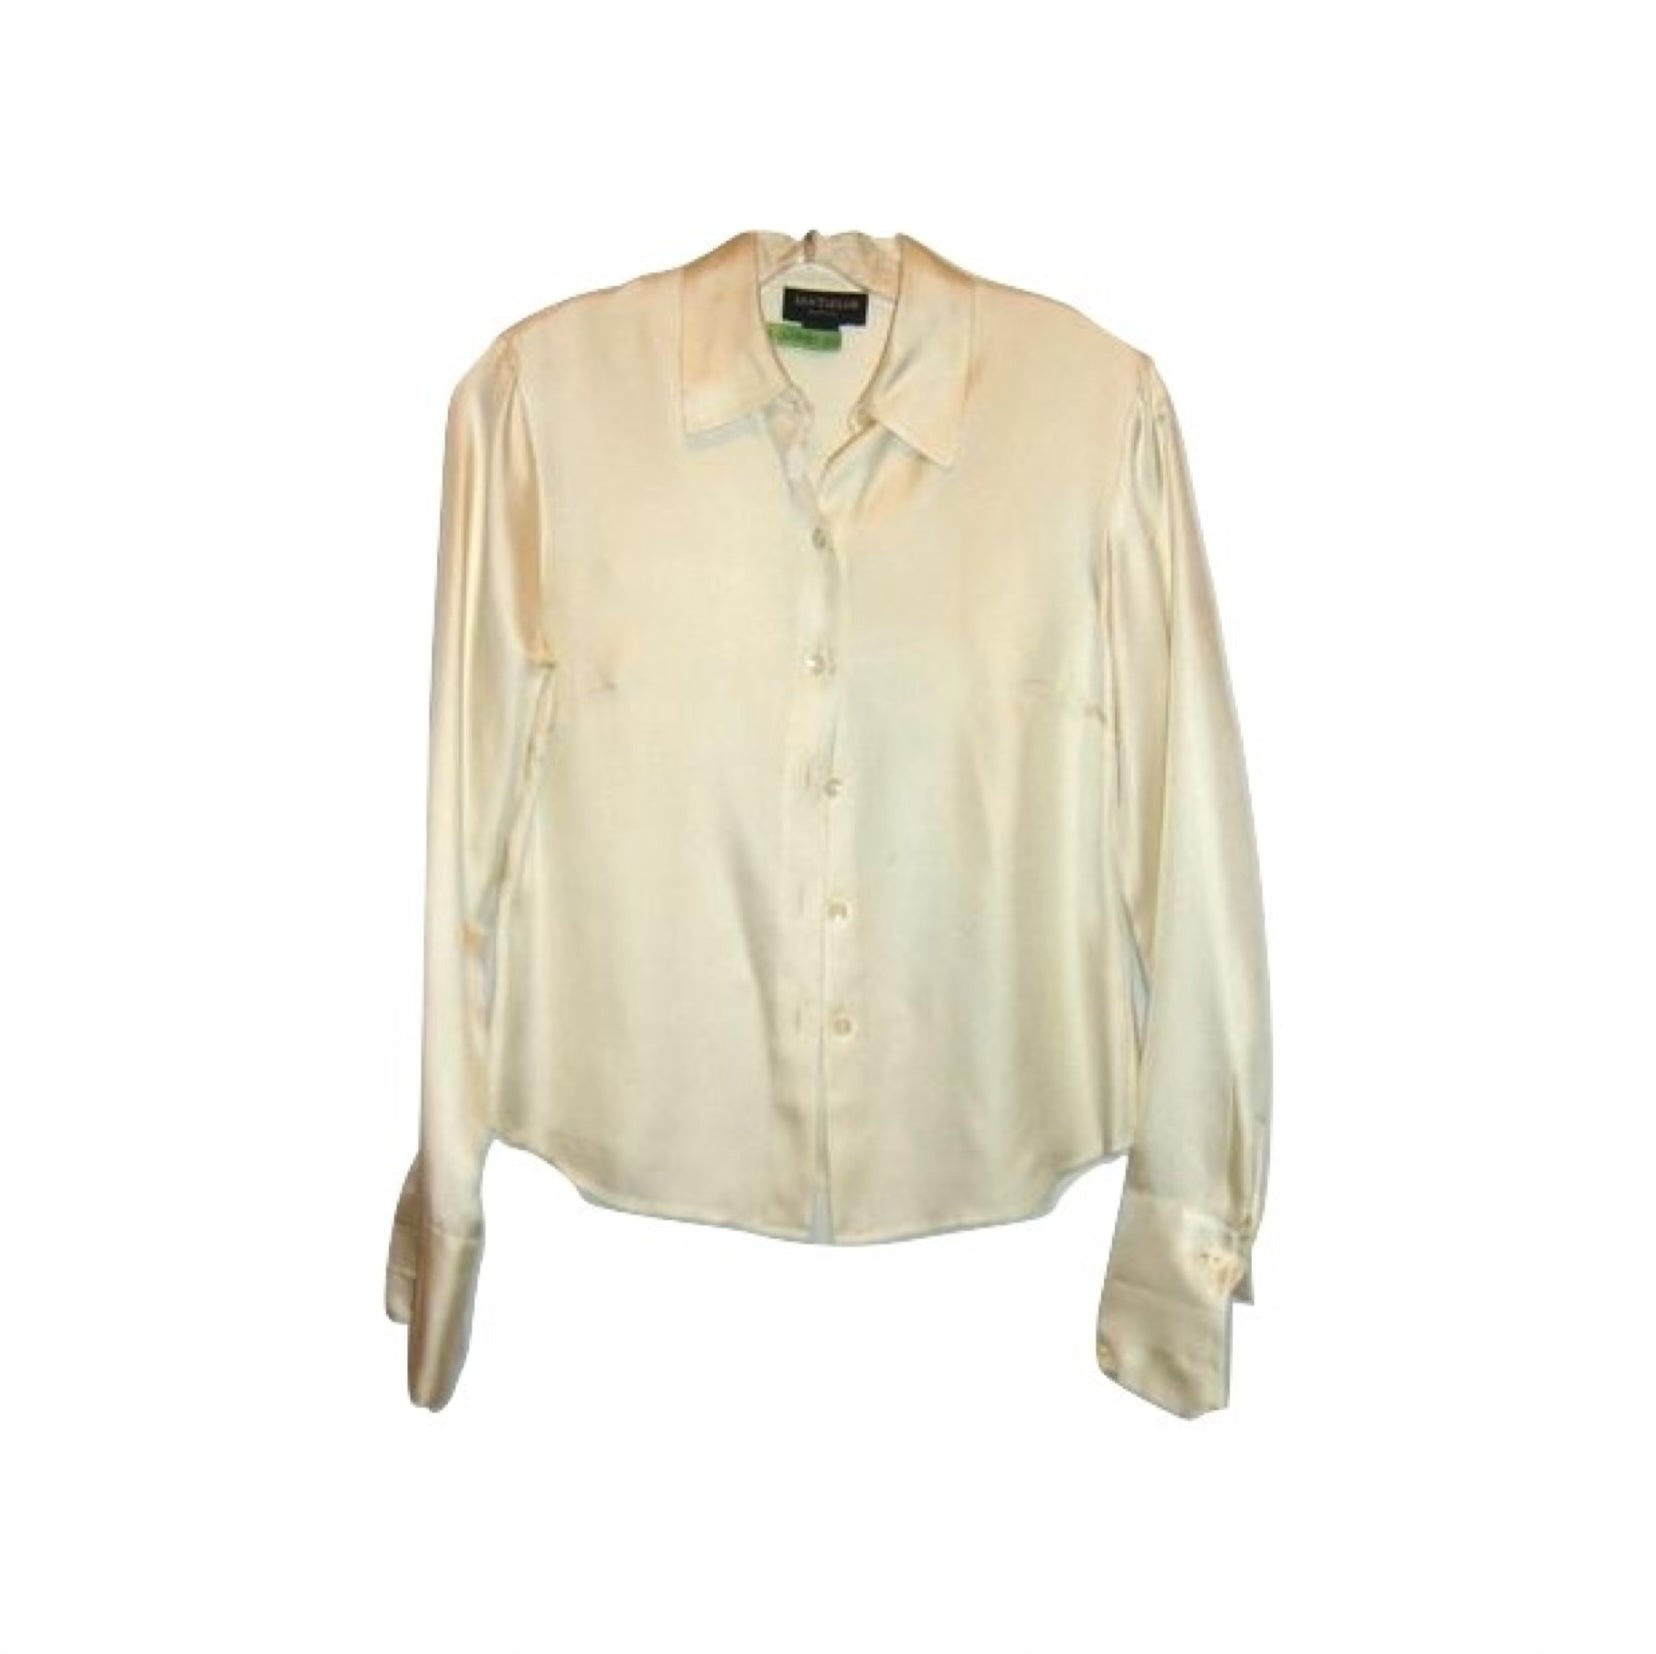 Talbots Cream White Silk Career Cocktail Blouse 4 Small 100% Silk